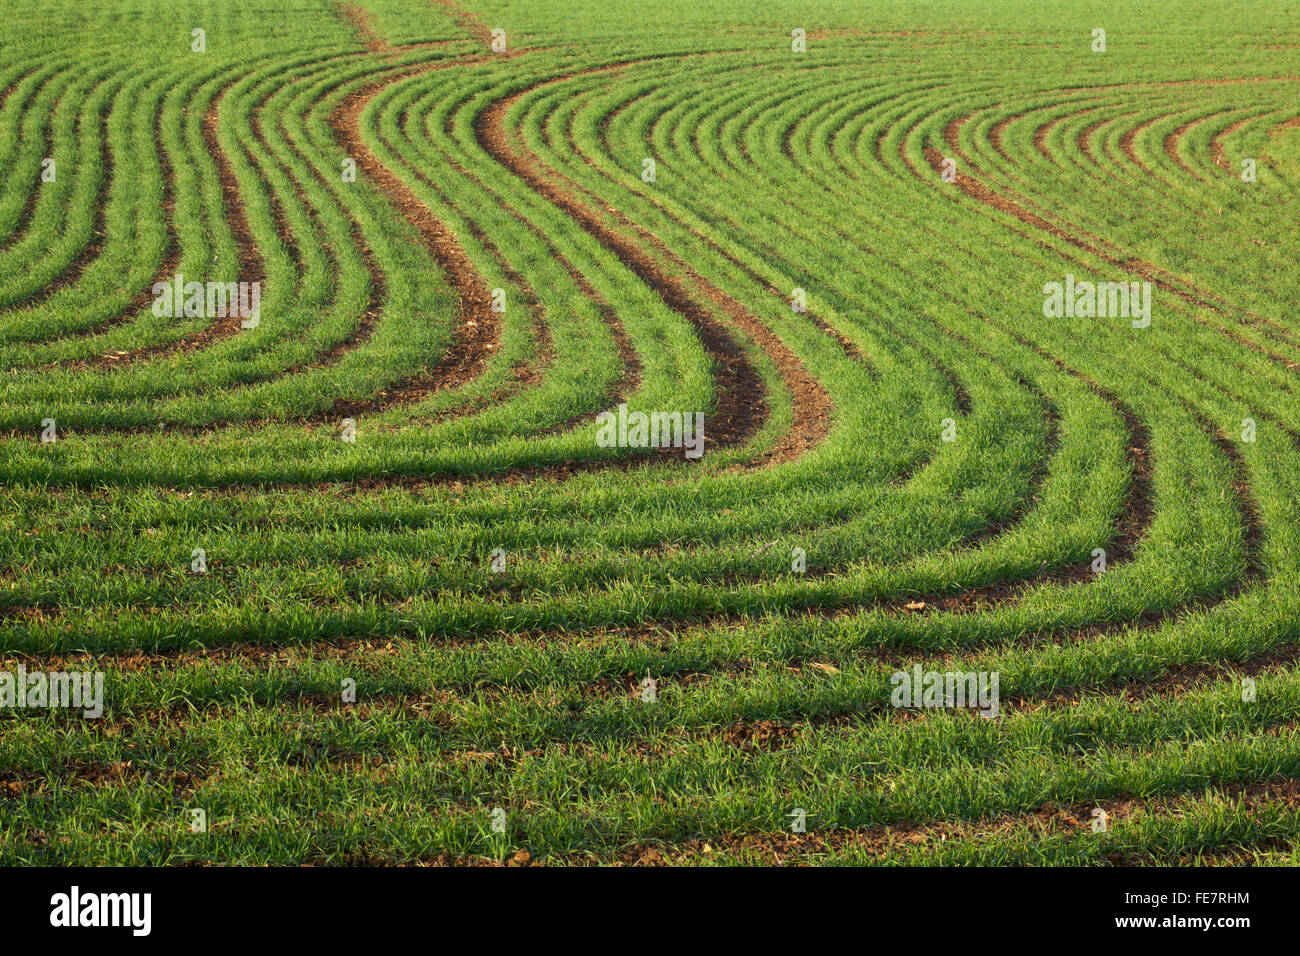 A field of winter sown wheat or barley in a sweeping 'S' shape pattern in the Northamptonshire countryside, - Stock Image